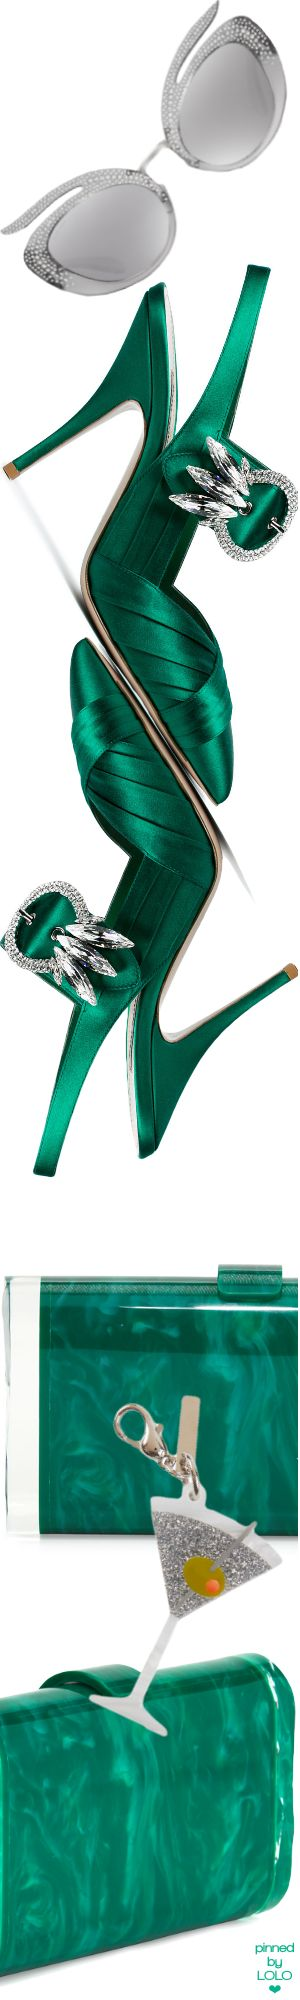 Miu Miu Green satin Crystal 105 Slingbacks | Edie Parker Clutch and bag Accessory